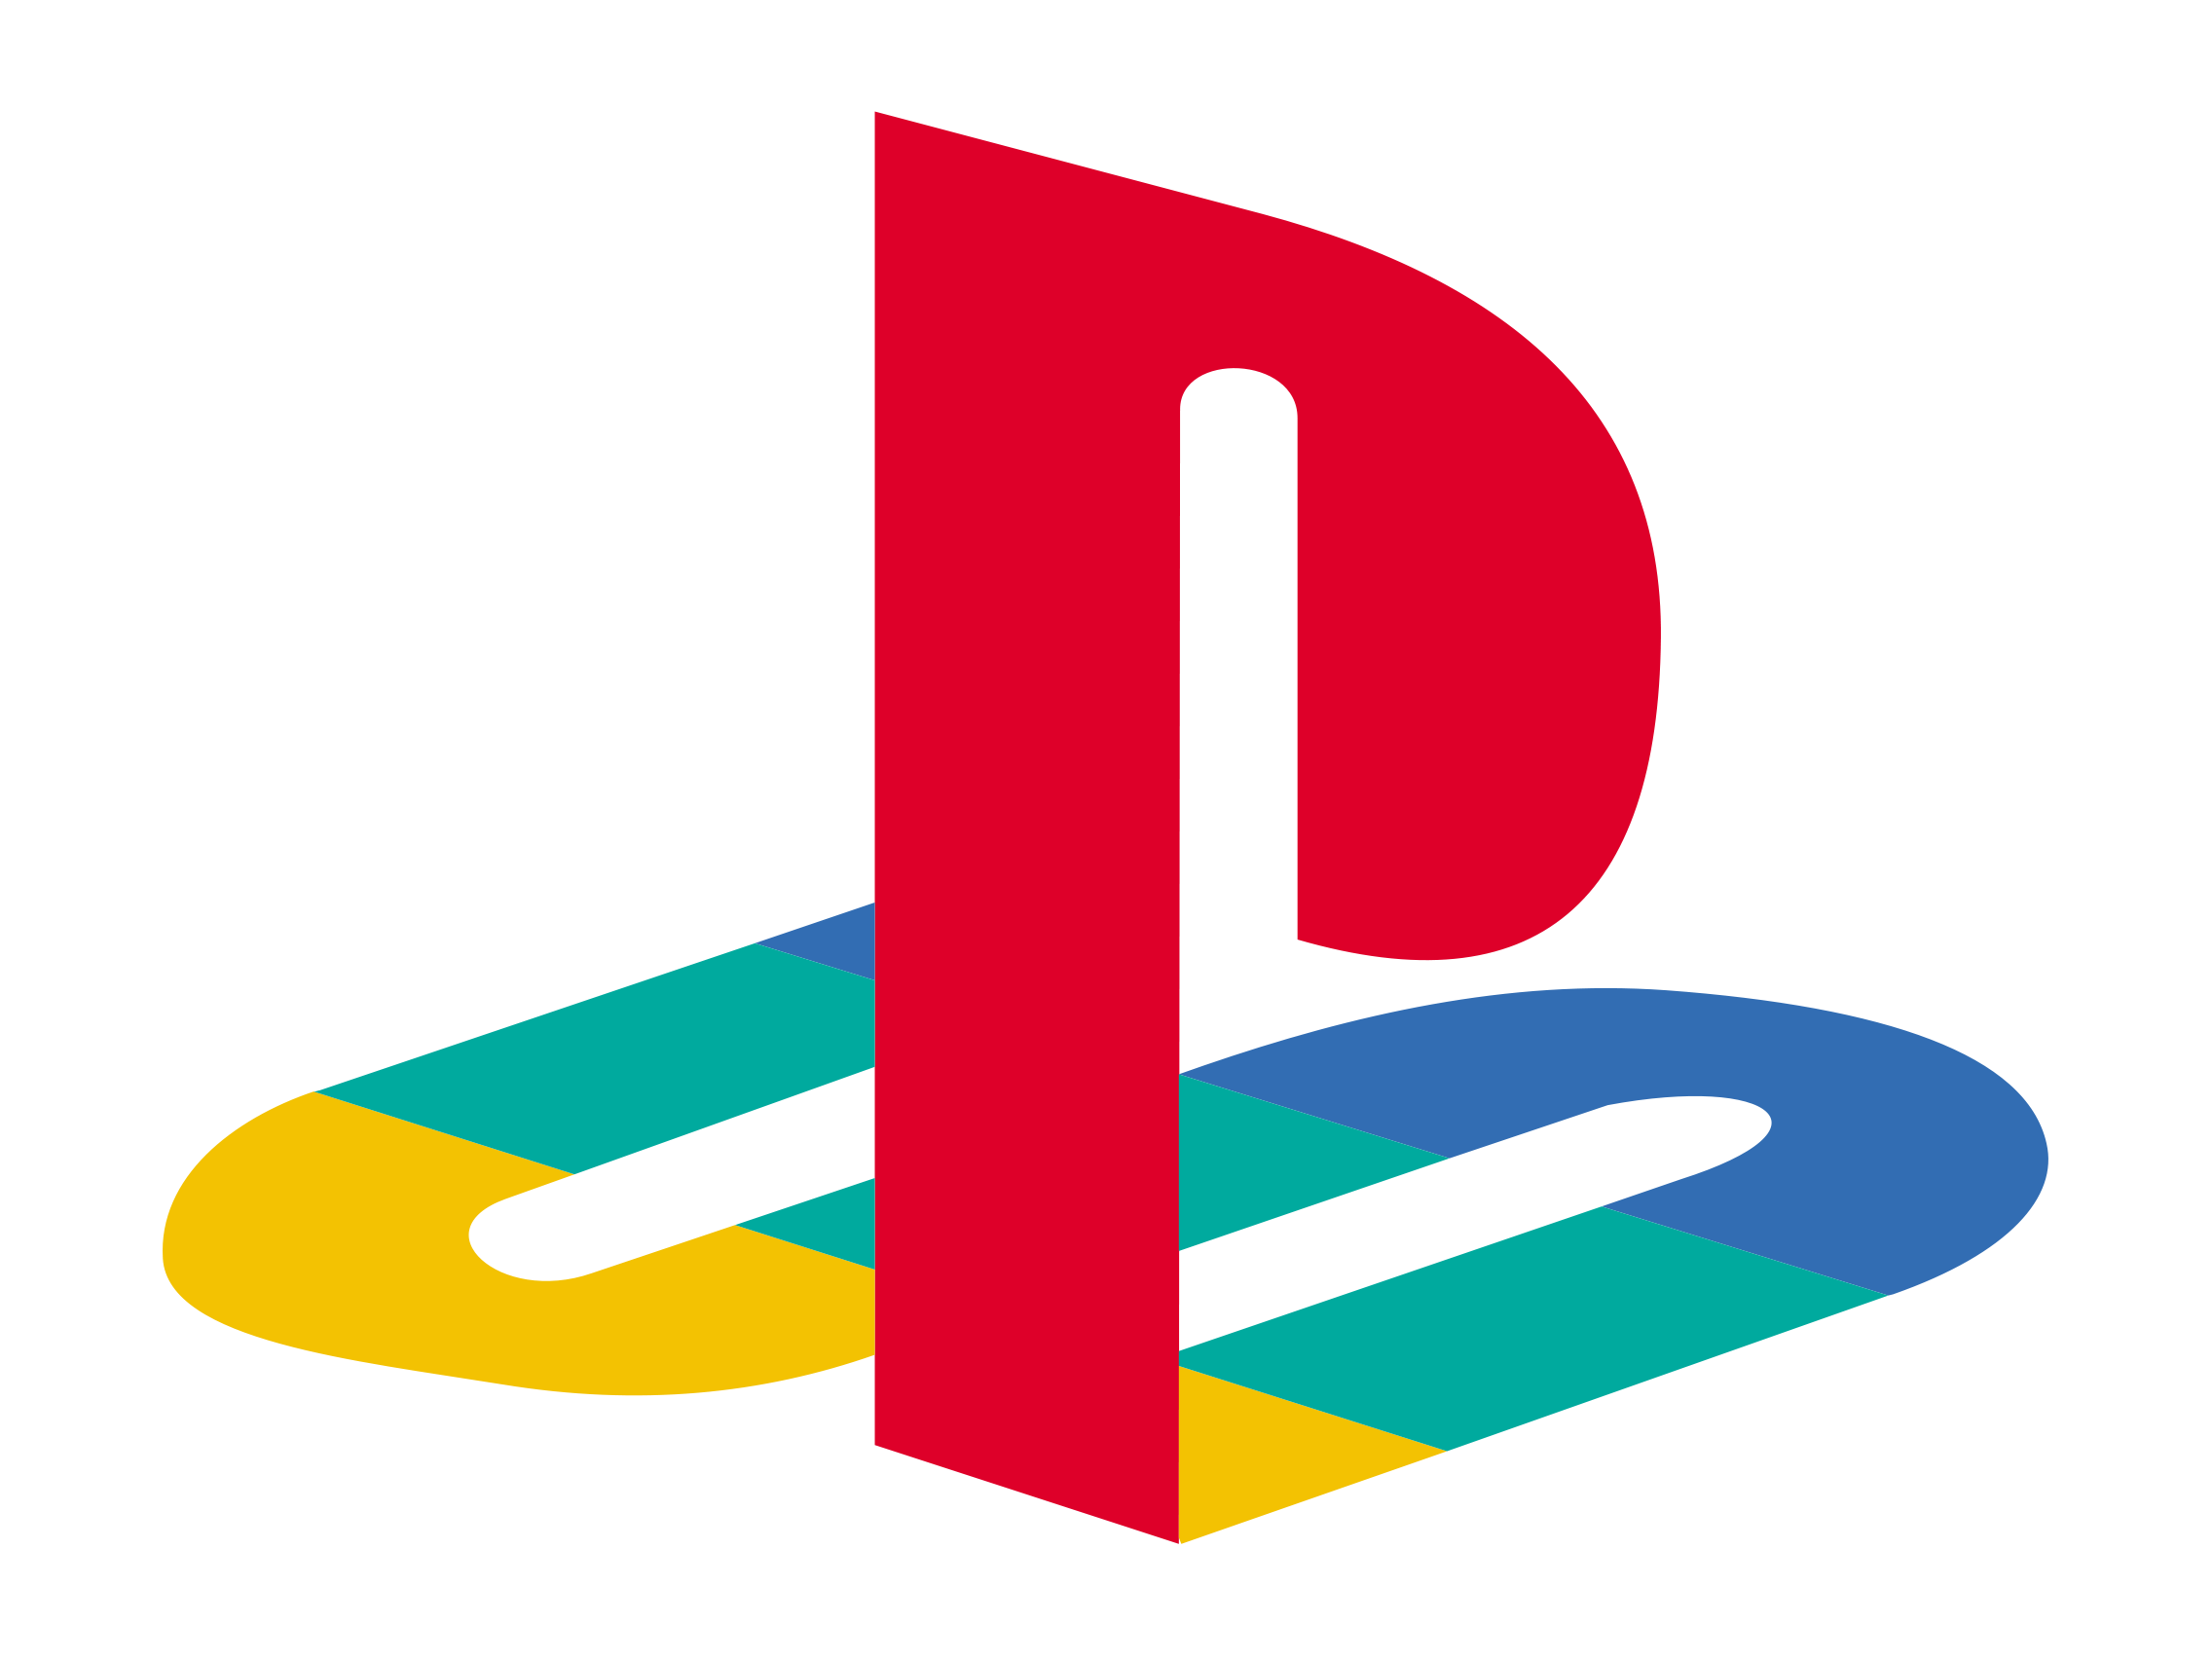 Playstation logotyp